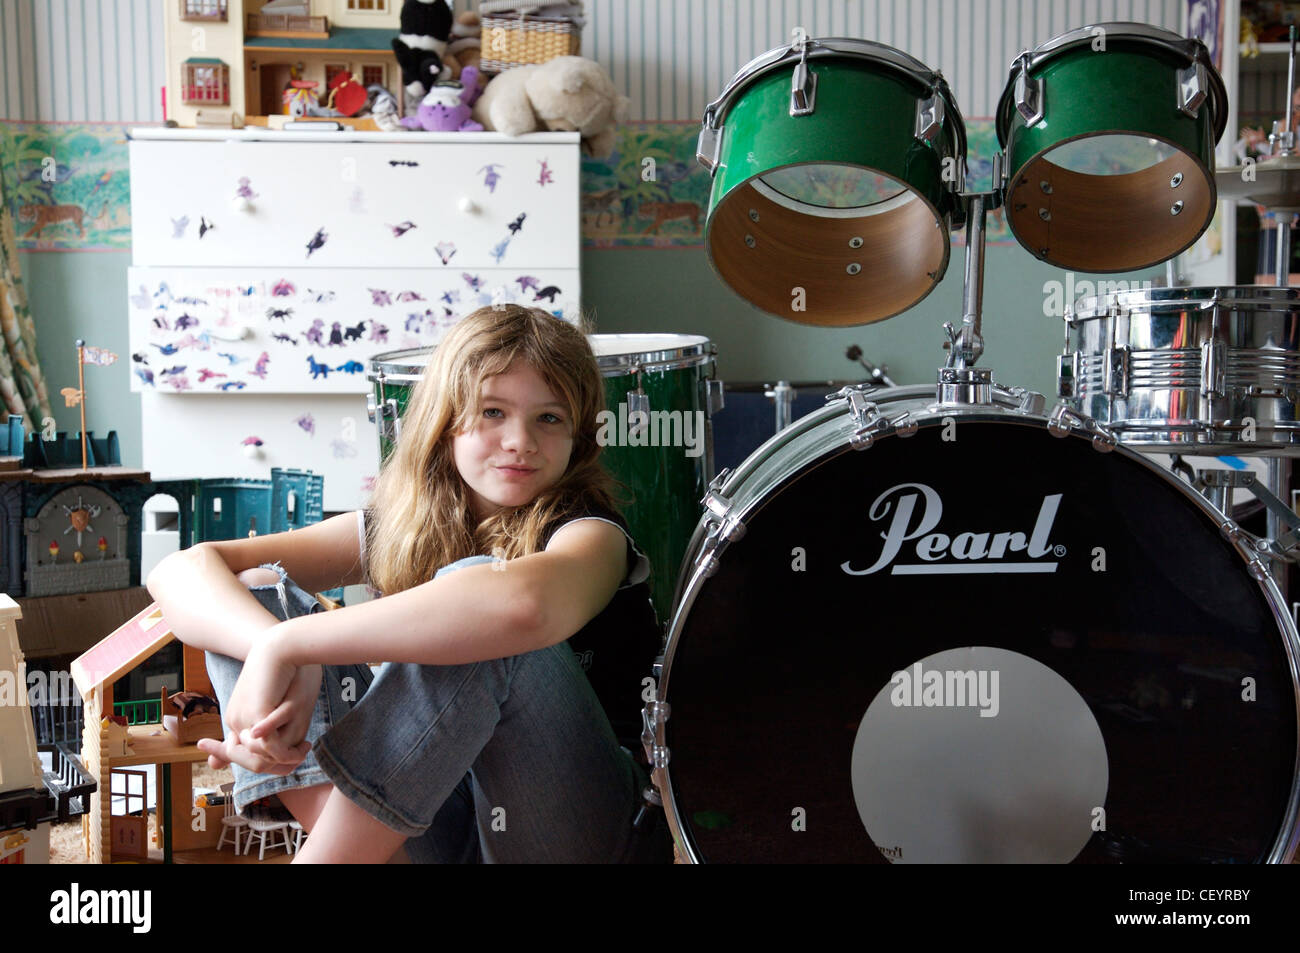 Female child, long blonde hair, black top, jeans, sitting on floby drum kit - Stock Image